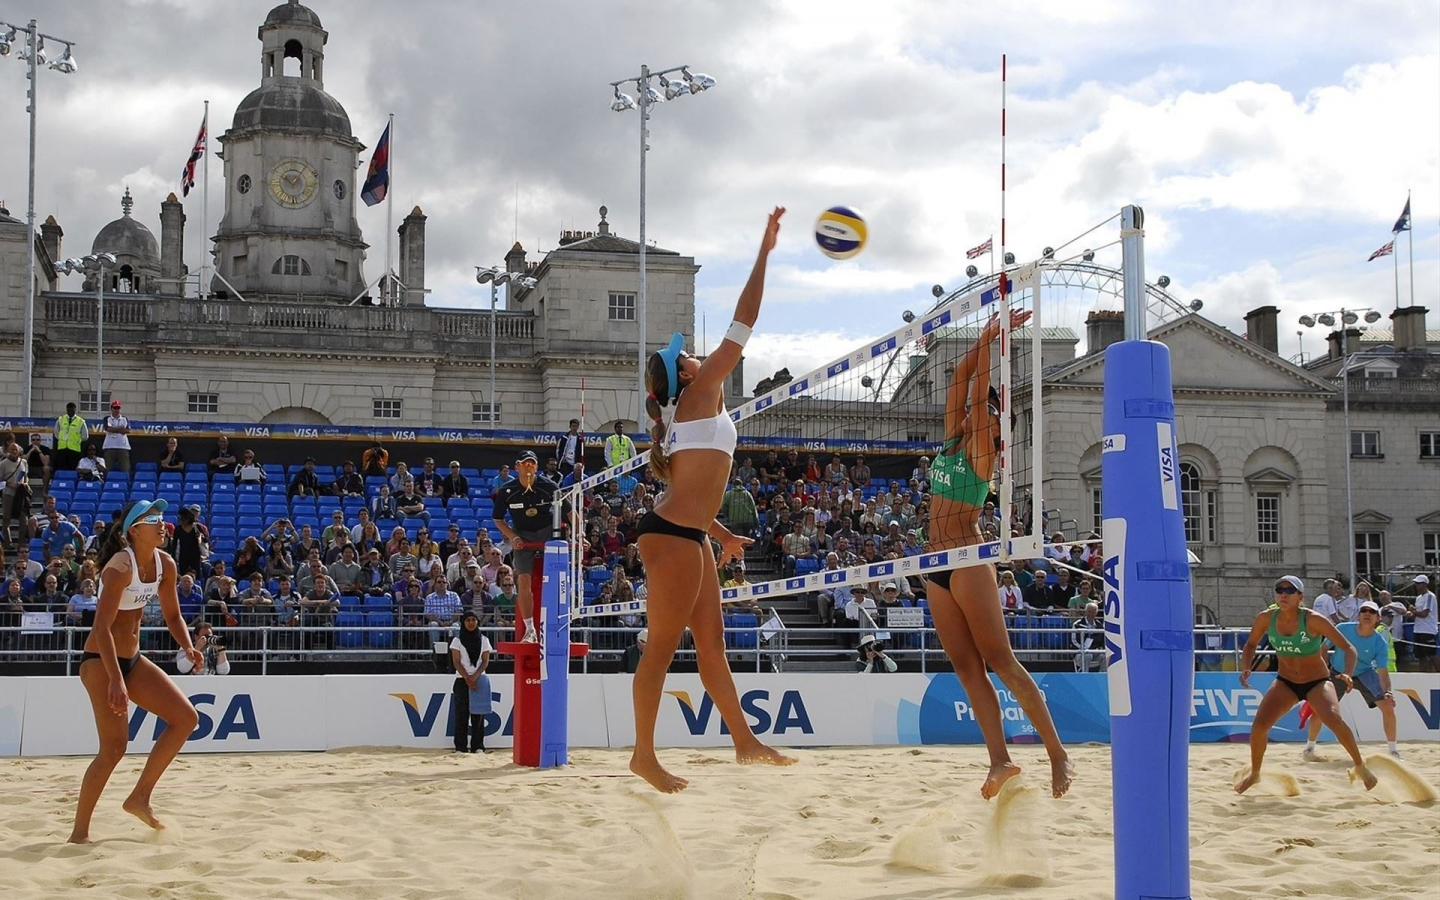 Voley en la playa - 1440x900